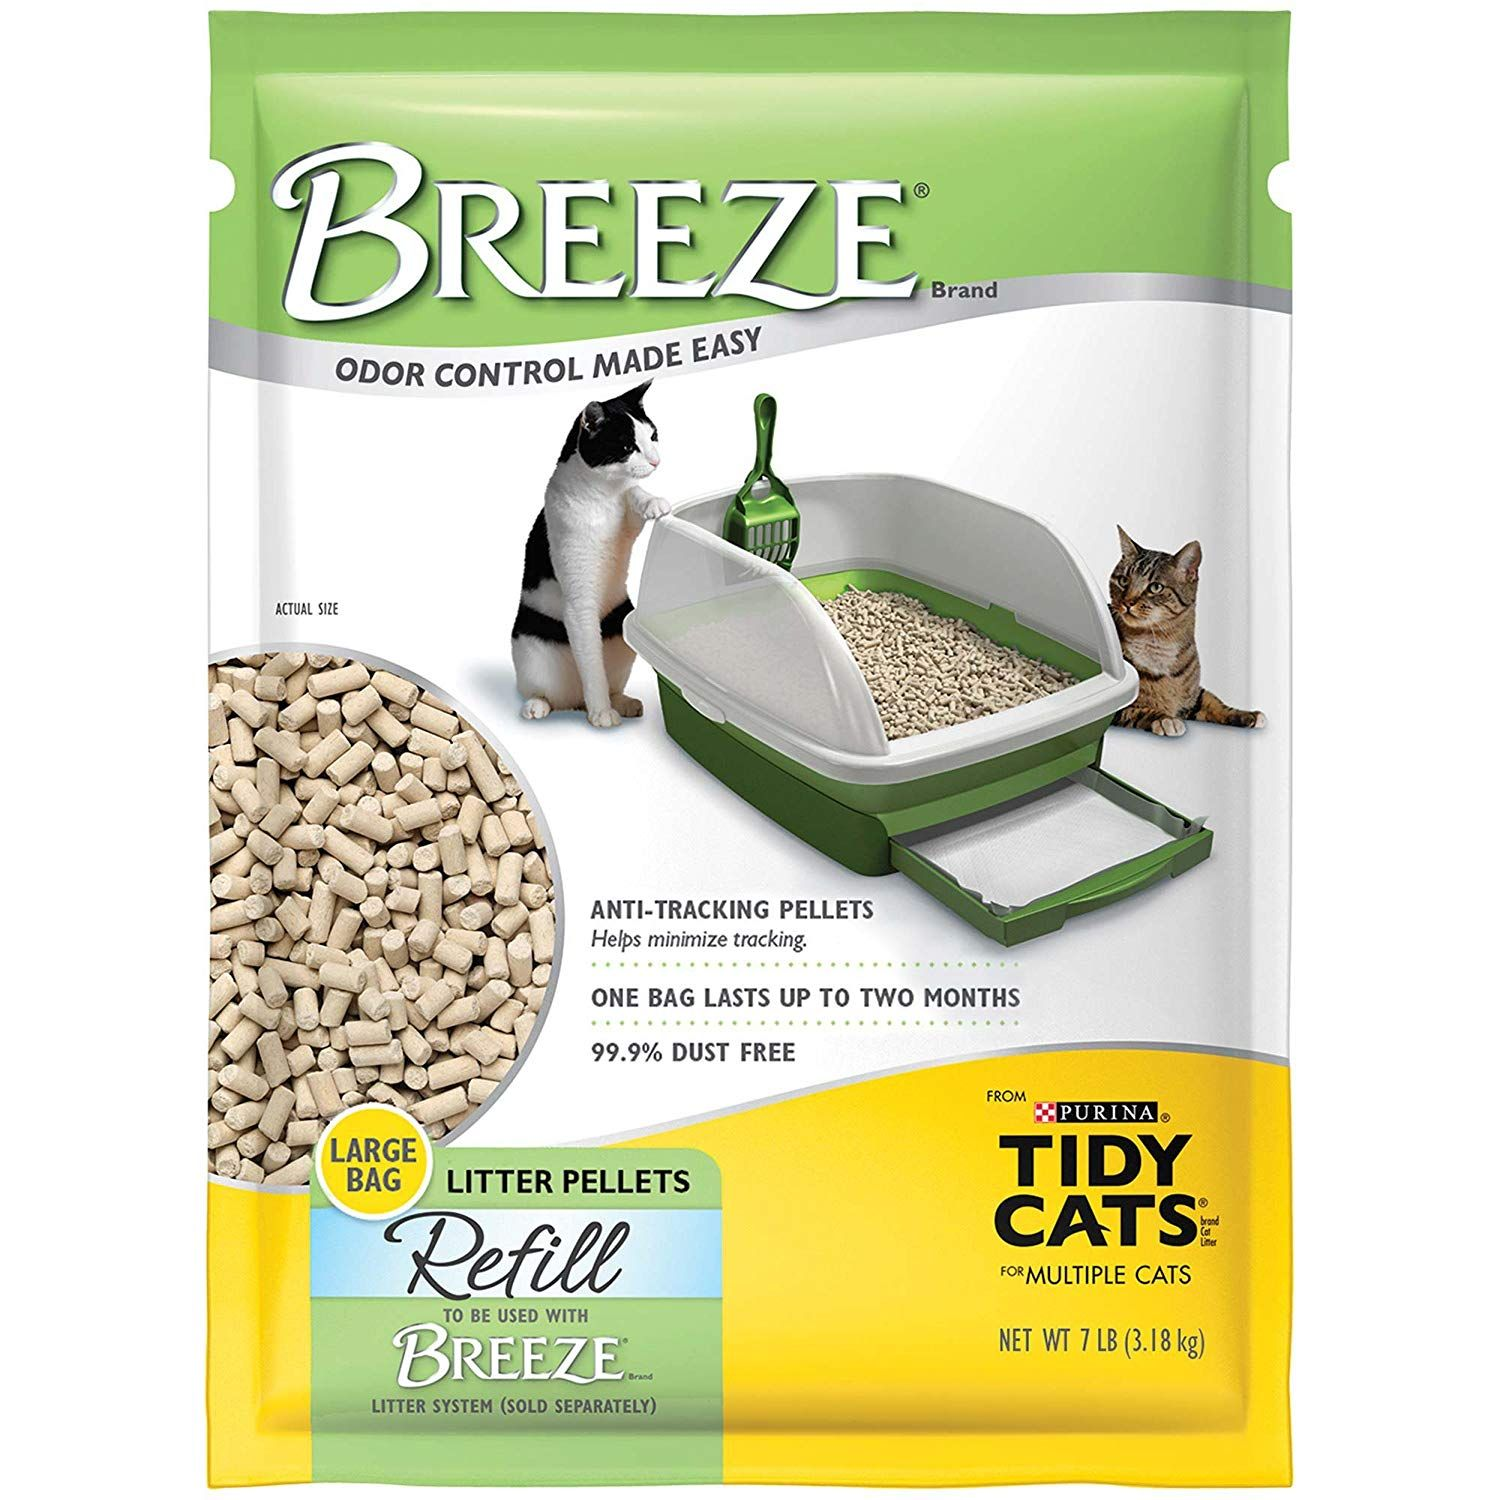 Tidy Cats Breeze Pellets 7 Lbs Xl Bag Click Image For More Details This Is An Affiliate Link Presentsfo Tidy Cats Tidy Cat Litter Automatic Cat Litter